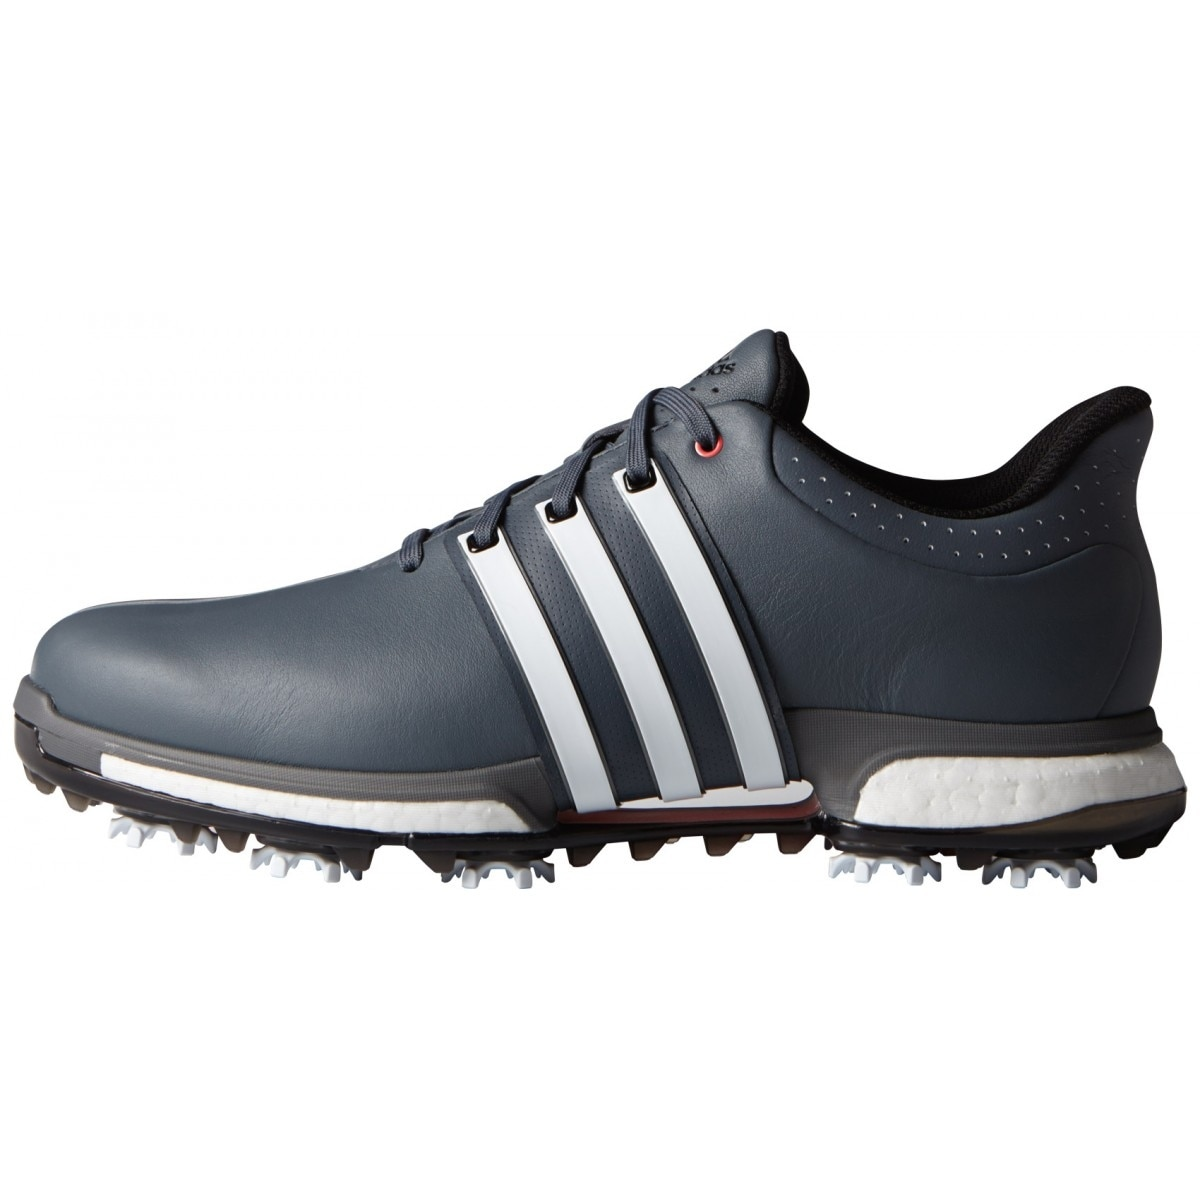 super popular 75411 1e51a Buy Size 11.5 Adidas Mens Golf Shoes Online at Overstock  Our Best Golf  Shoes Deals